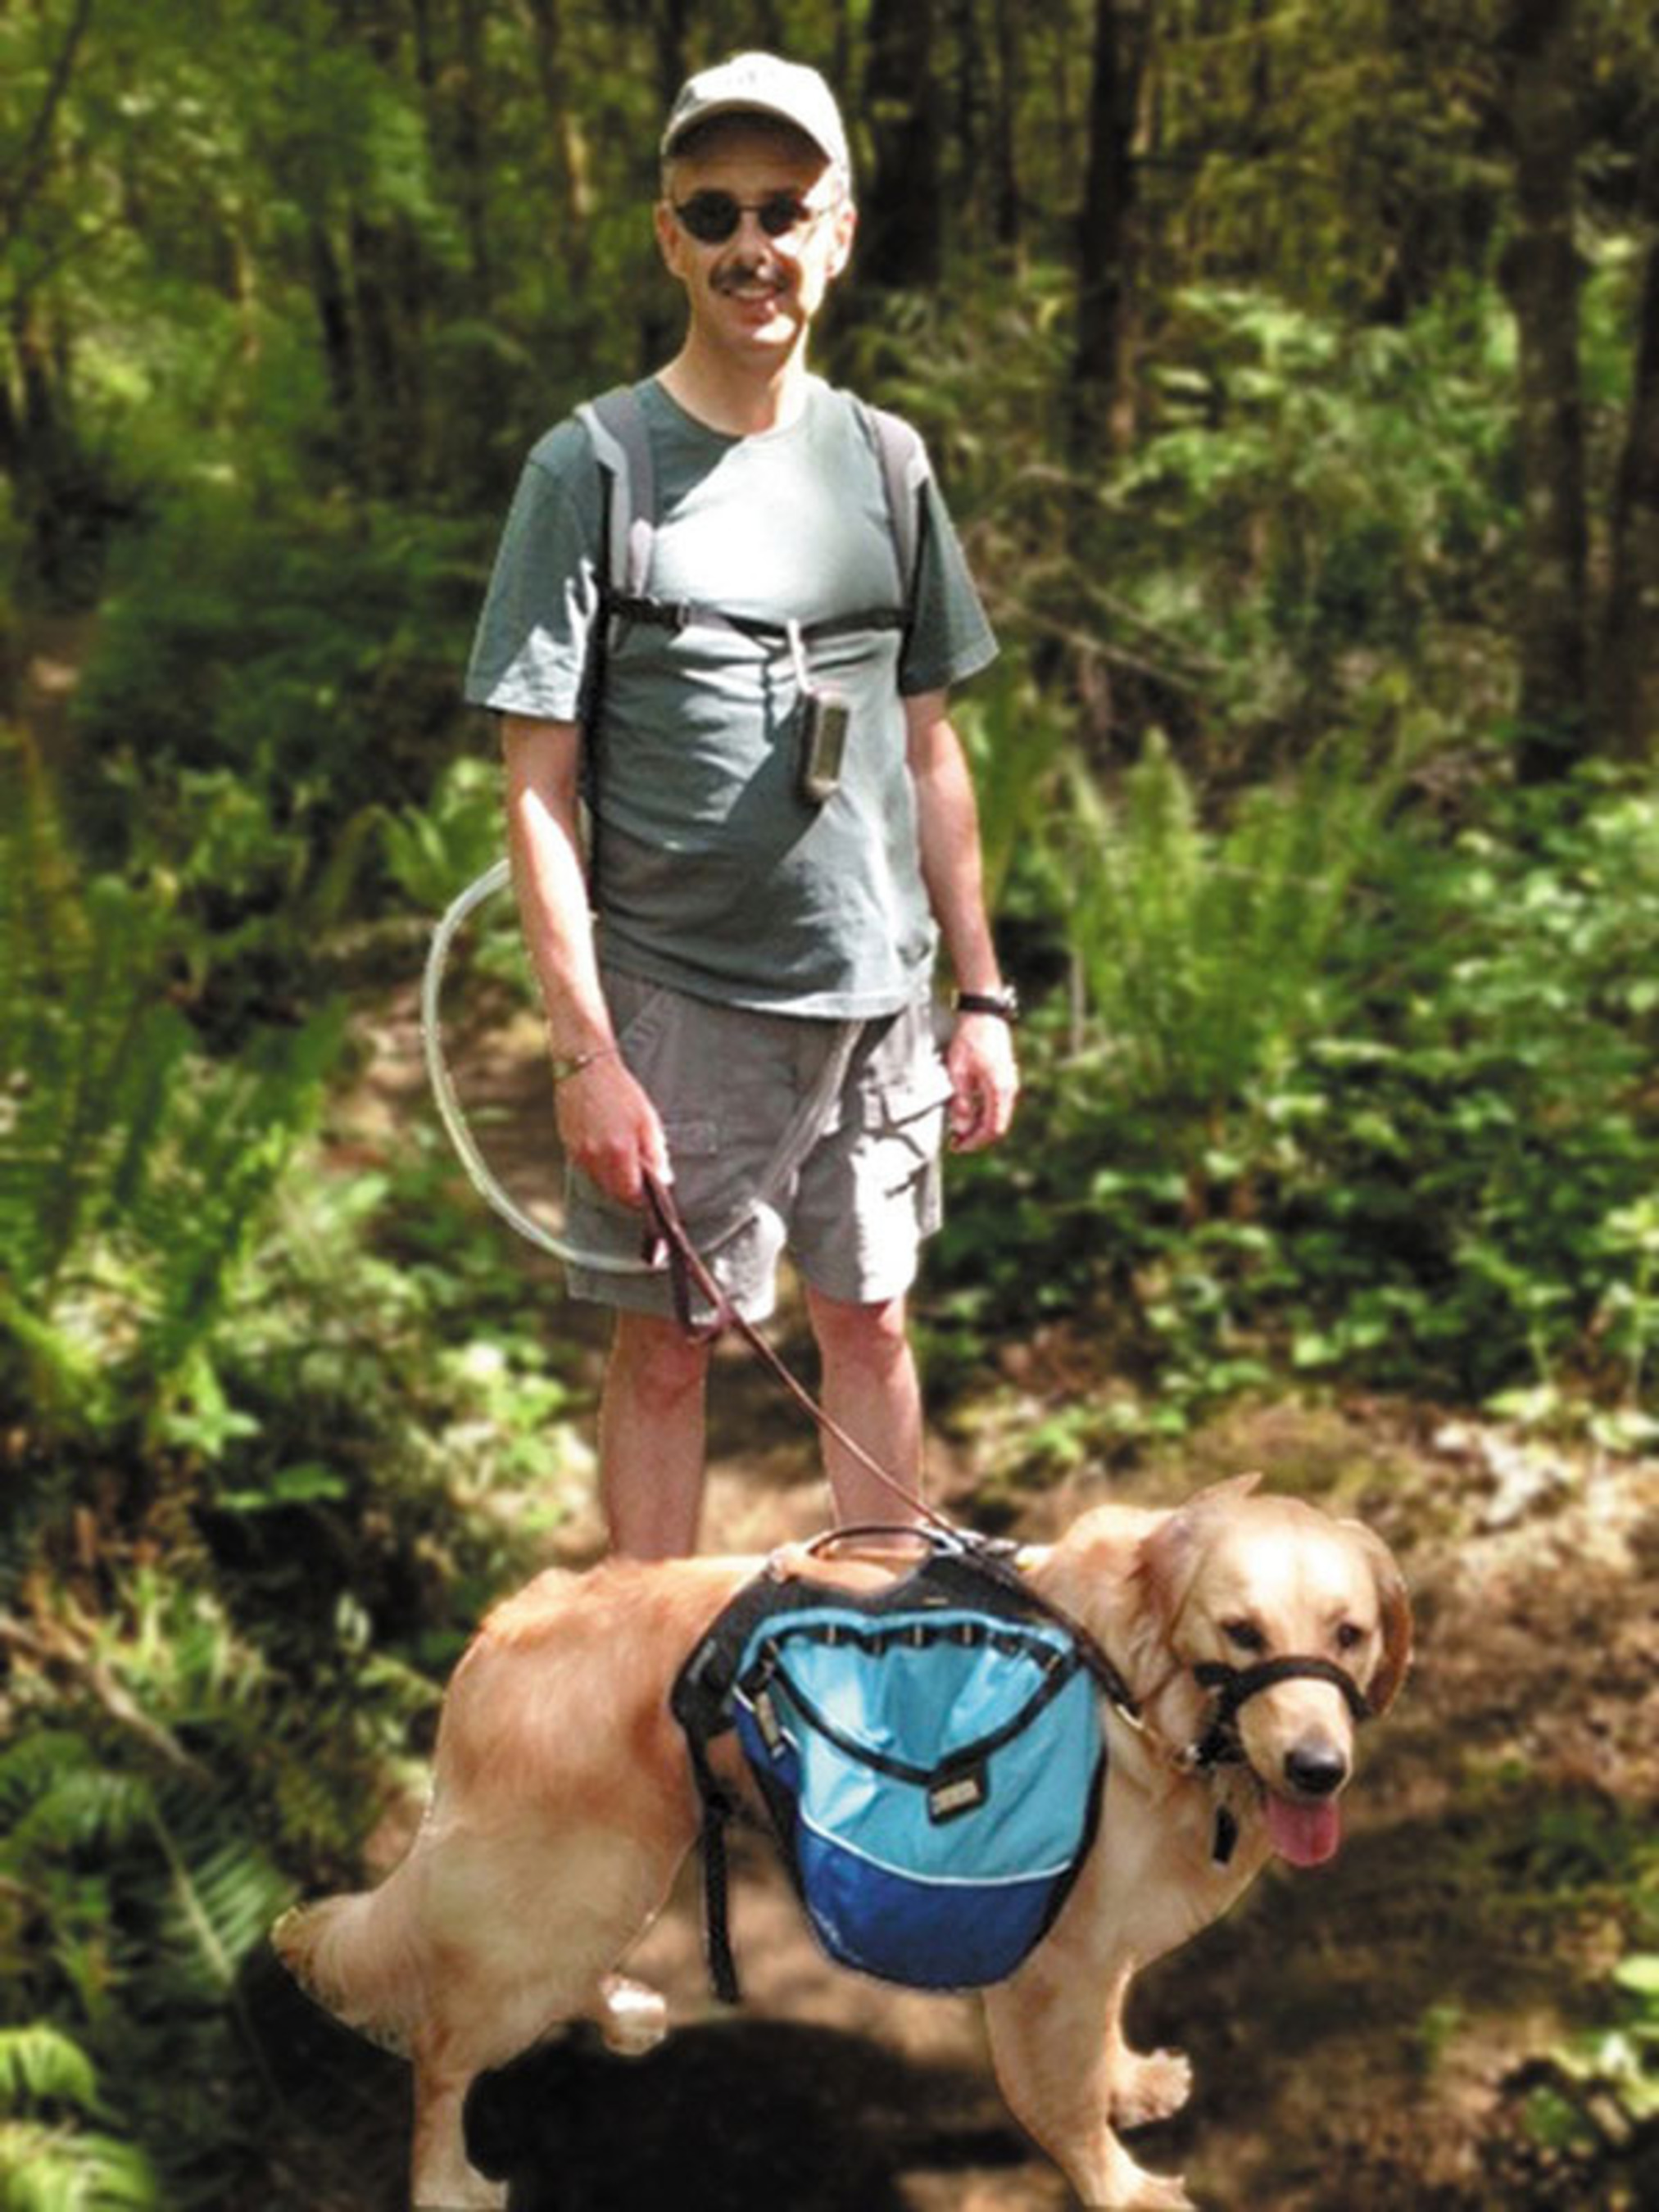 """Chris Marshall received his SynCardia Total Artificial Heart from UW Medical Center, which is recognized in """"Becker's 100 Great Hospitals in America"""" list. Wearing the 13.5-pound Freedom® portable driver that powers the SynCardia Heart, Marshall hiked 607 miles while waiting for a donor. After 219 days of support on the SynCardia Heart, he received a donor heart on Sept. 12, 2012. The Freedom portable driver is approved by Health Canada, has the CE mark in Europe and is pending FDA approval.  (PRNewsFoto/SynCardia Systems, Inc.)"""